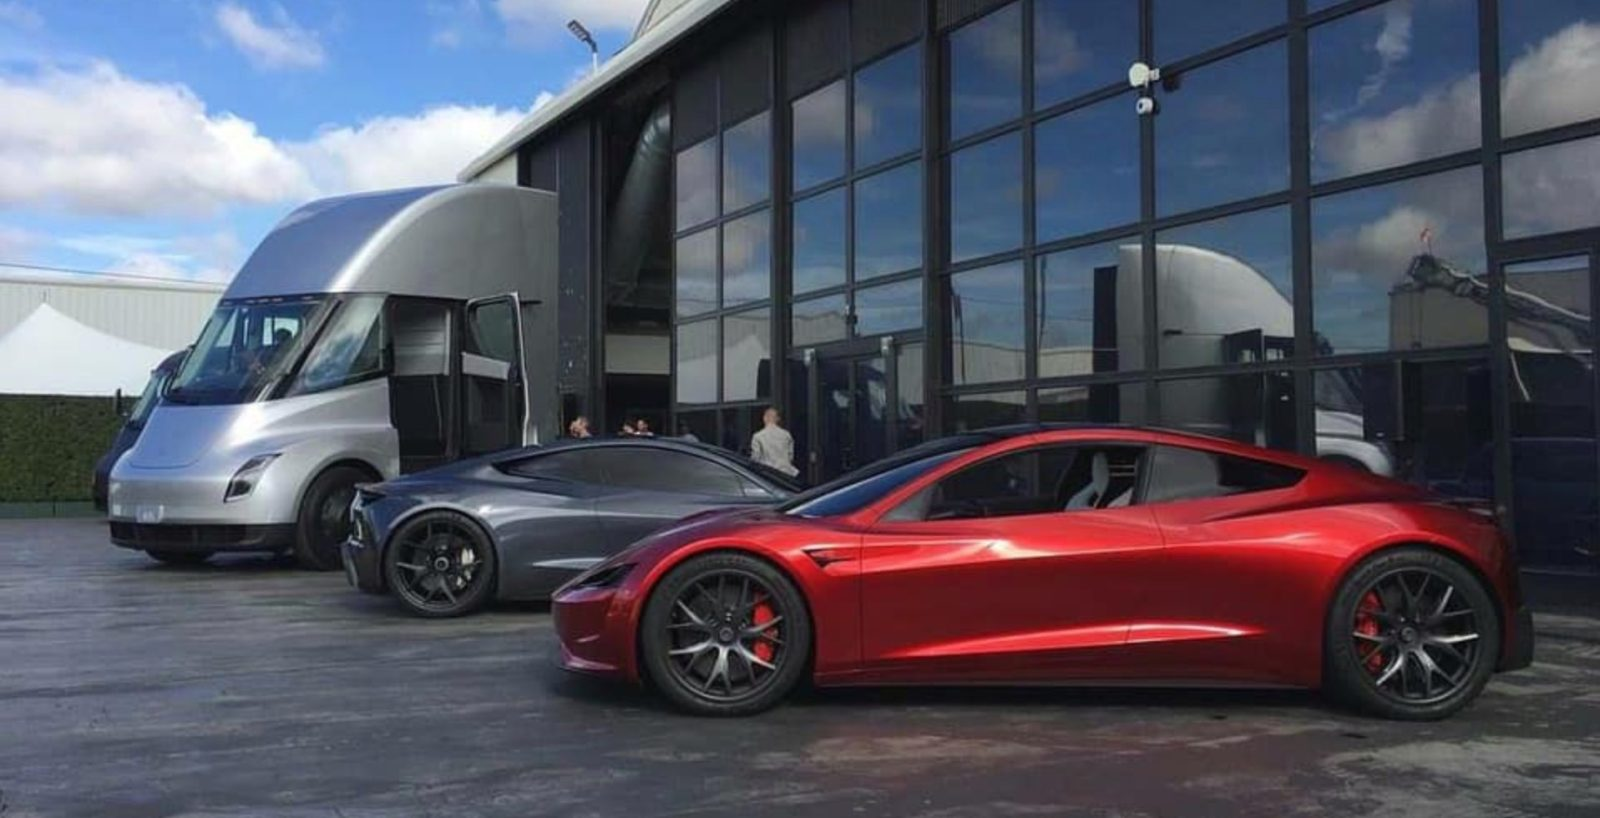 Tesla is giving away over 80 new Roadsters for free, which